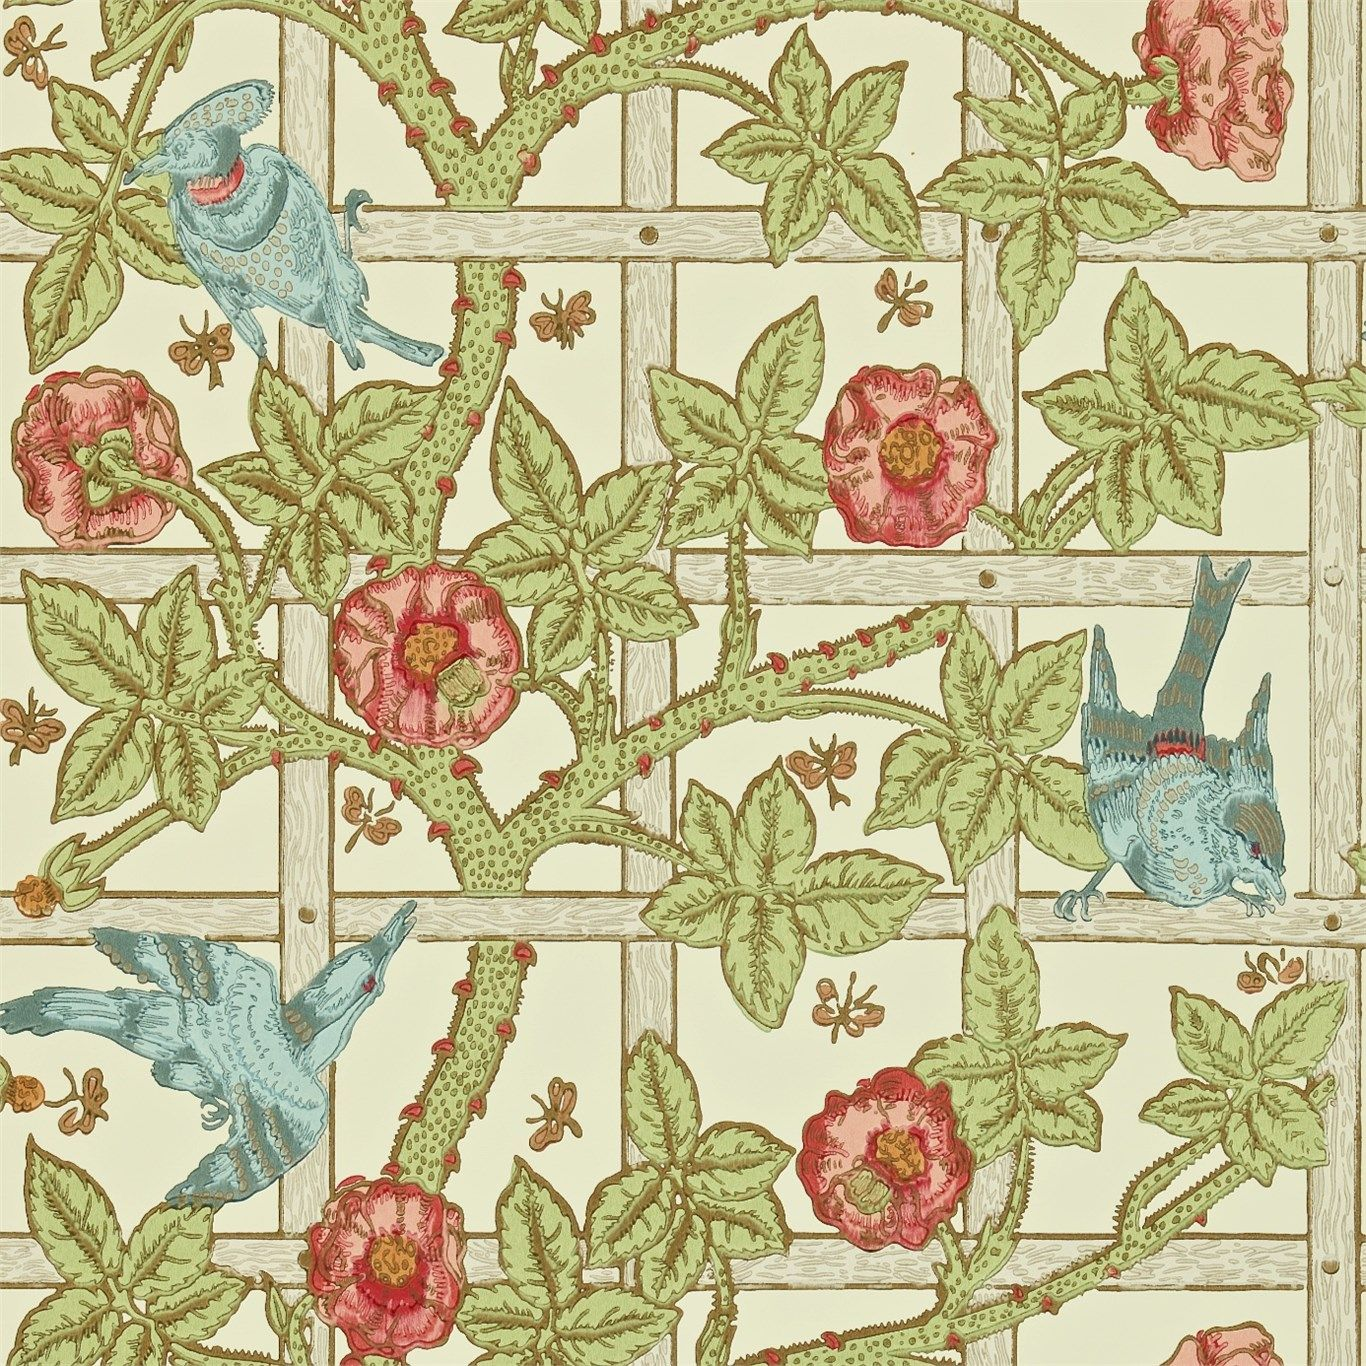 A History Lesson: Lattice, Trellis, and Trelliage | William morris ...